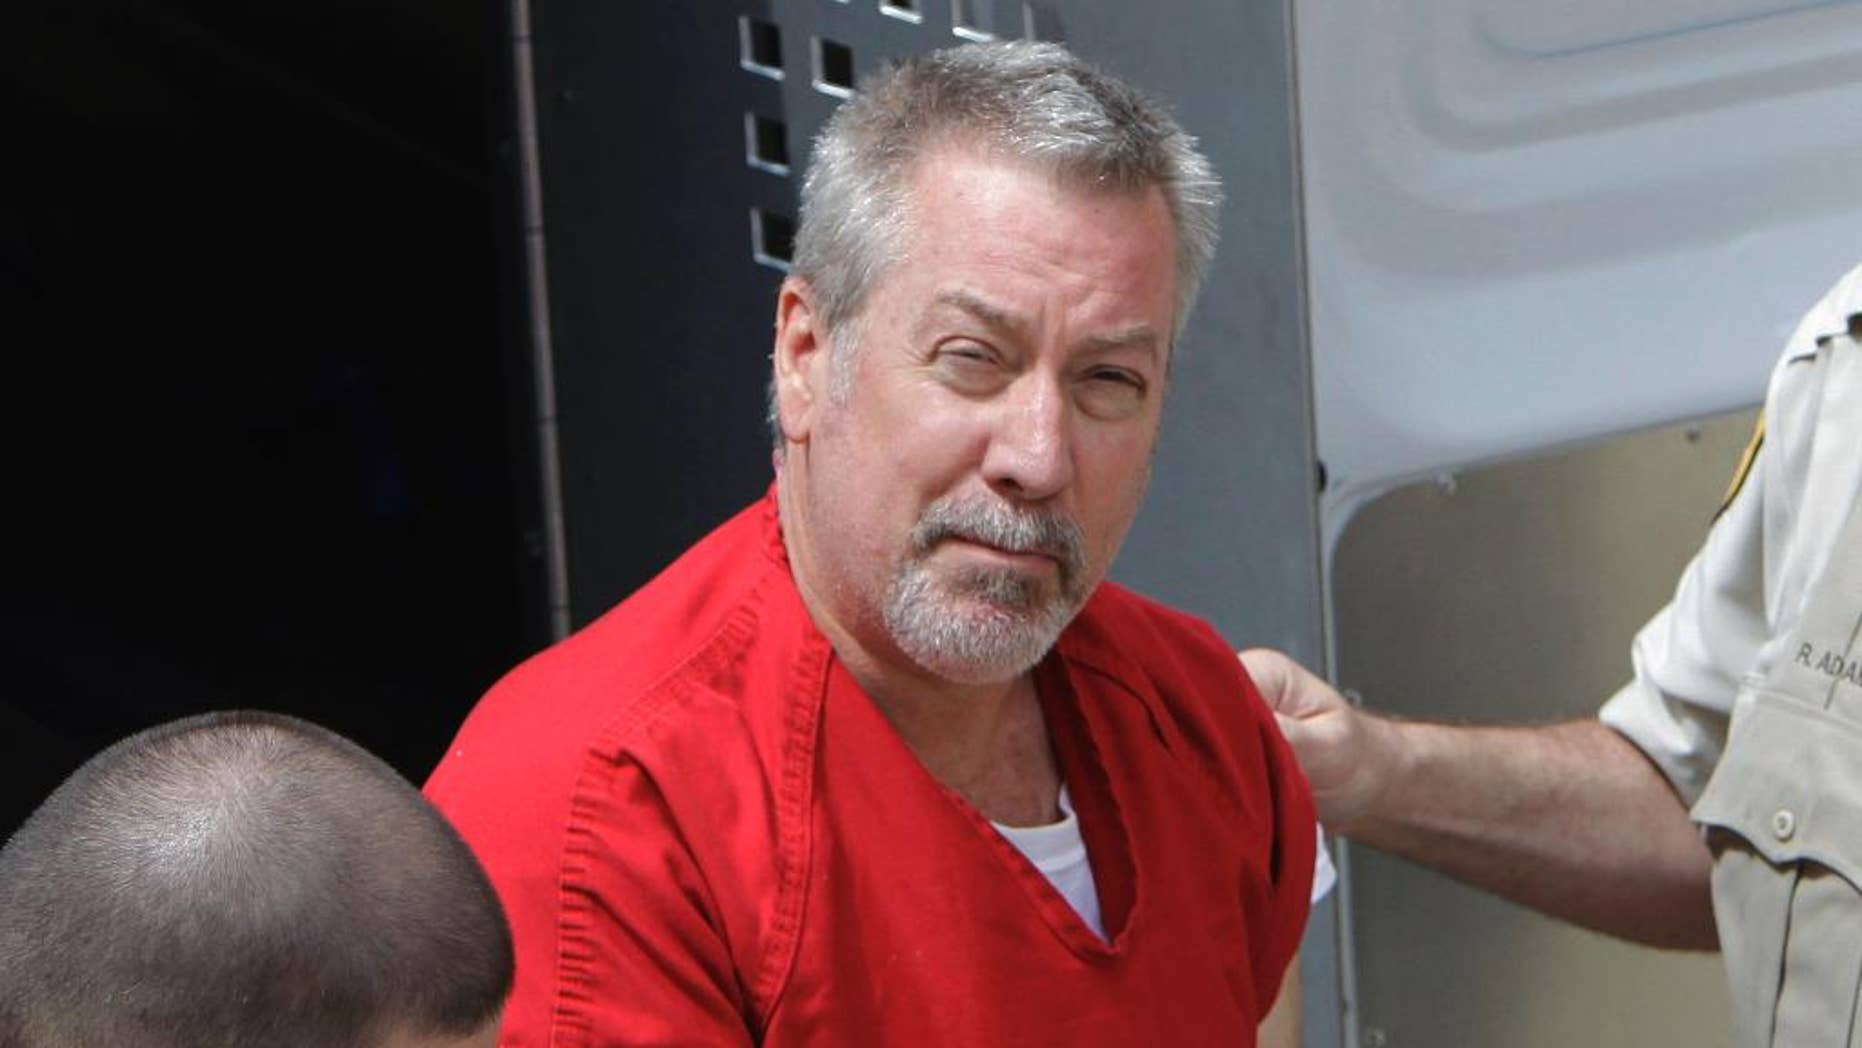 FILE - In this May 8, 2009 file photo, former Bolingbrook, Ill., police officer Drew Peterson arrives for court in Joliet, Ill.  On Tuesday, April 14, 2015, a Randolph County judge in Chester, Ill., set a July 6, 2015 jury trial date for Peterson, who is charged with trying to kill the prosecutor who helped put him in prison for his third wife's death. (AP Photo/M. Spencer Green, File)